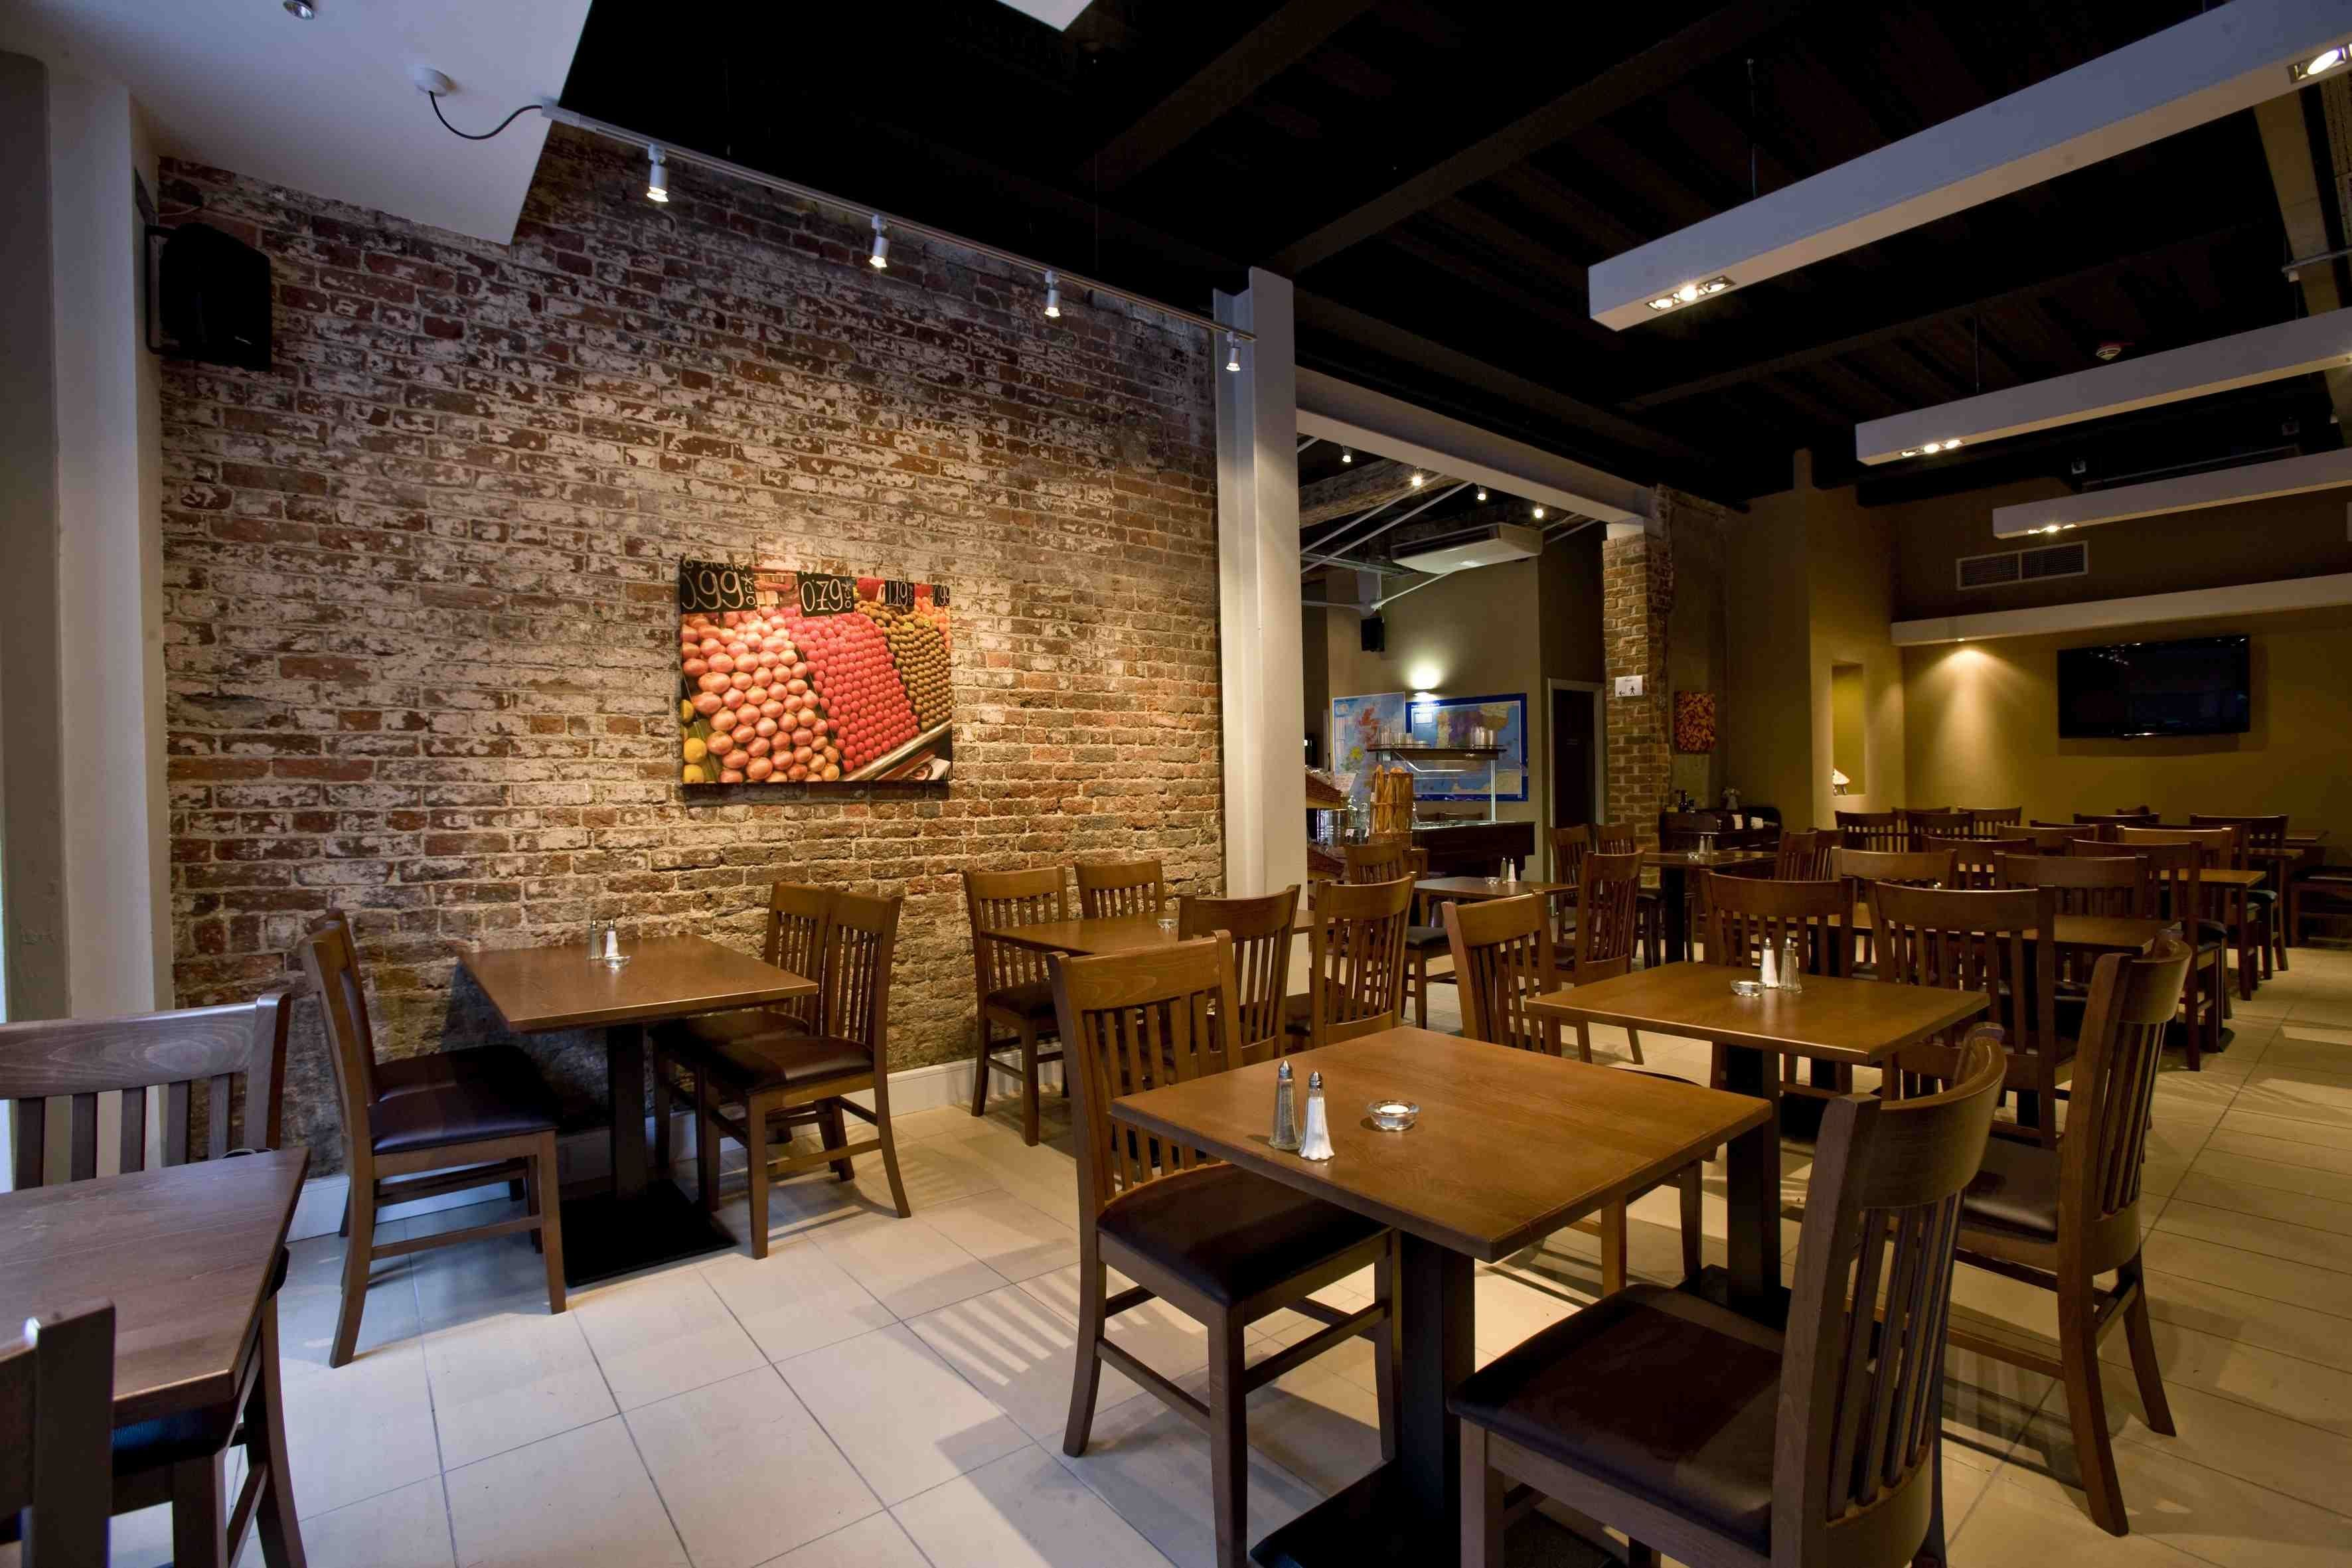 decorations dining restaurant interior design home and ideas creative decorating for cafe of spike africas san diego images in building photo